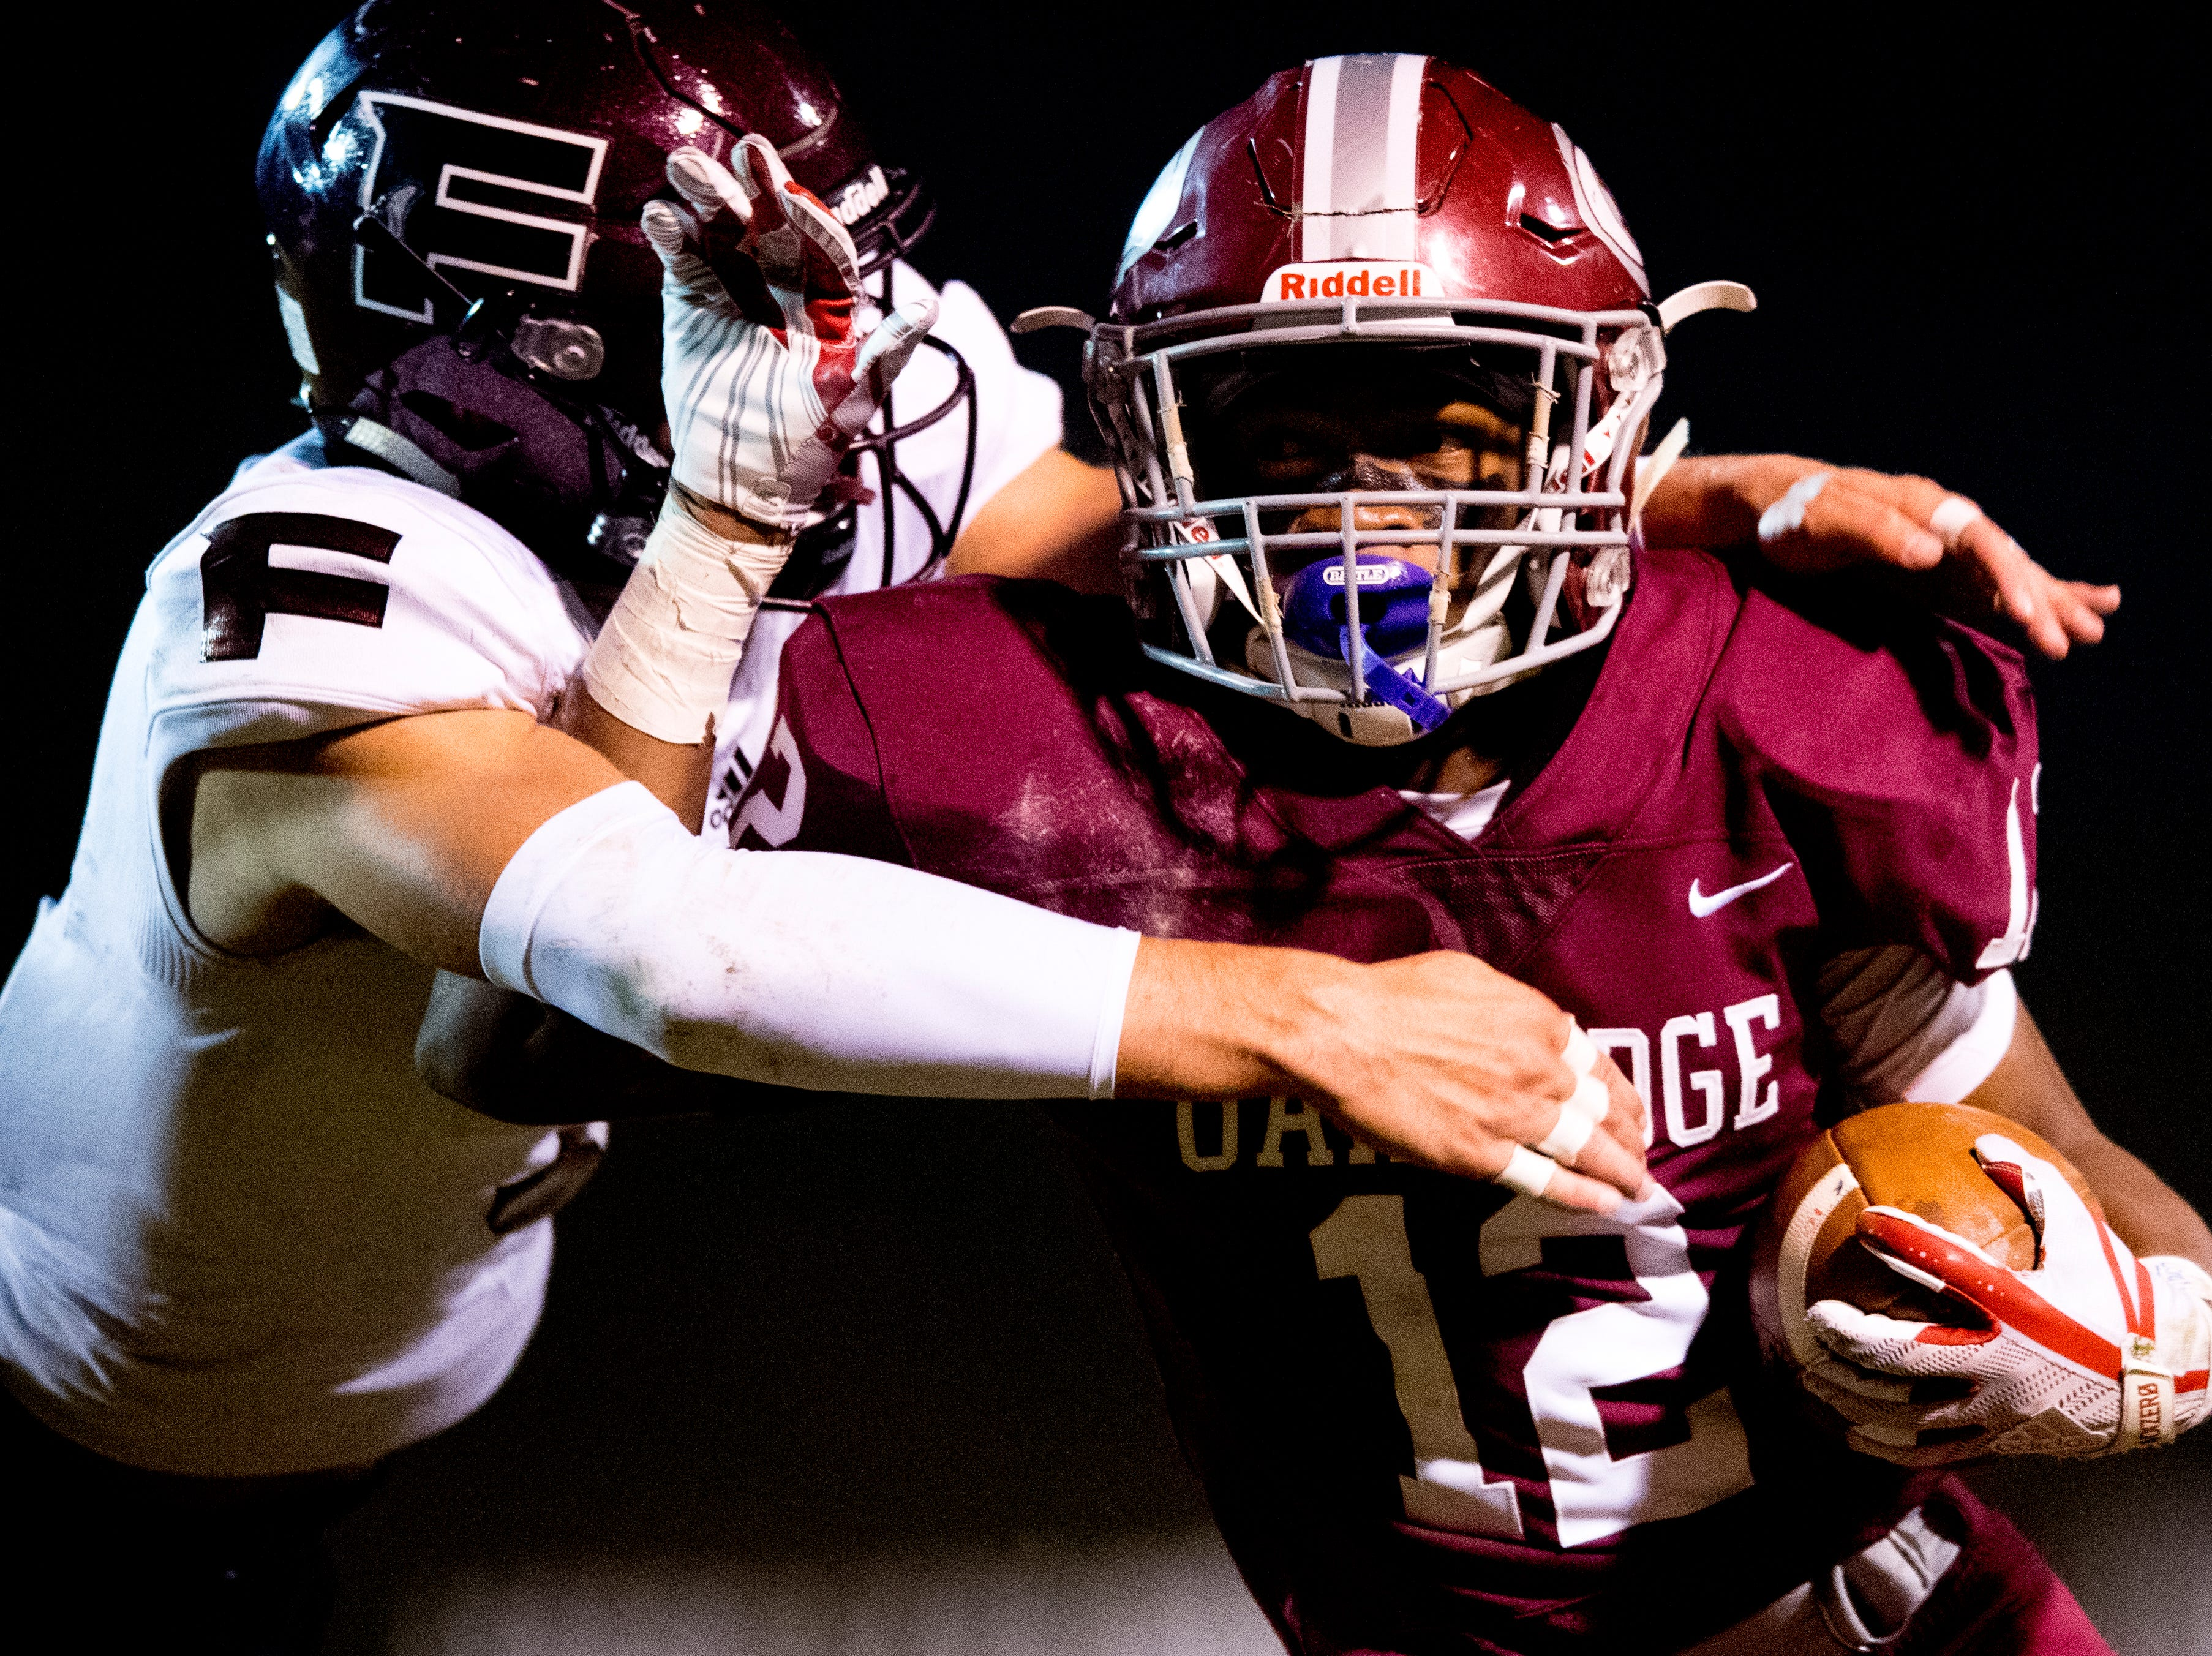 Oak Ridge's Kai'Reese Pendergrass (12) is attacked by Fulton's Tommy Sweat (9) during a football game between Oak Ridge and Fulton at Blankenship Field in Oak Ridge, Tennessee on Thursday, October 25, 2018.